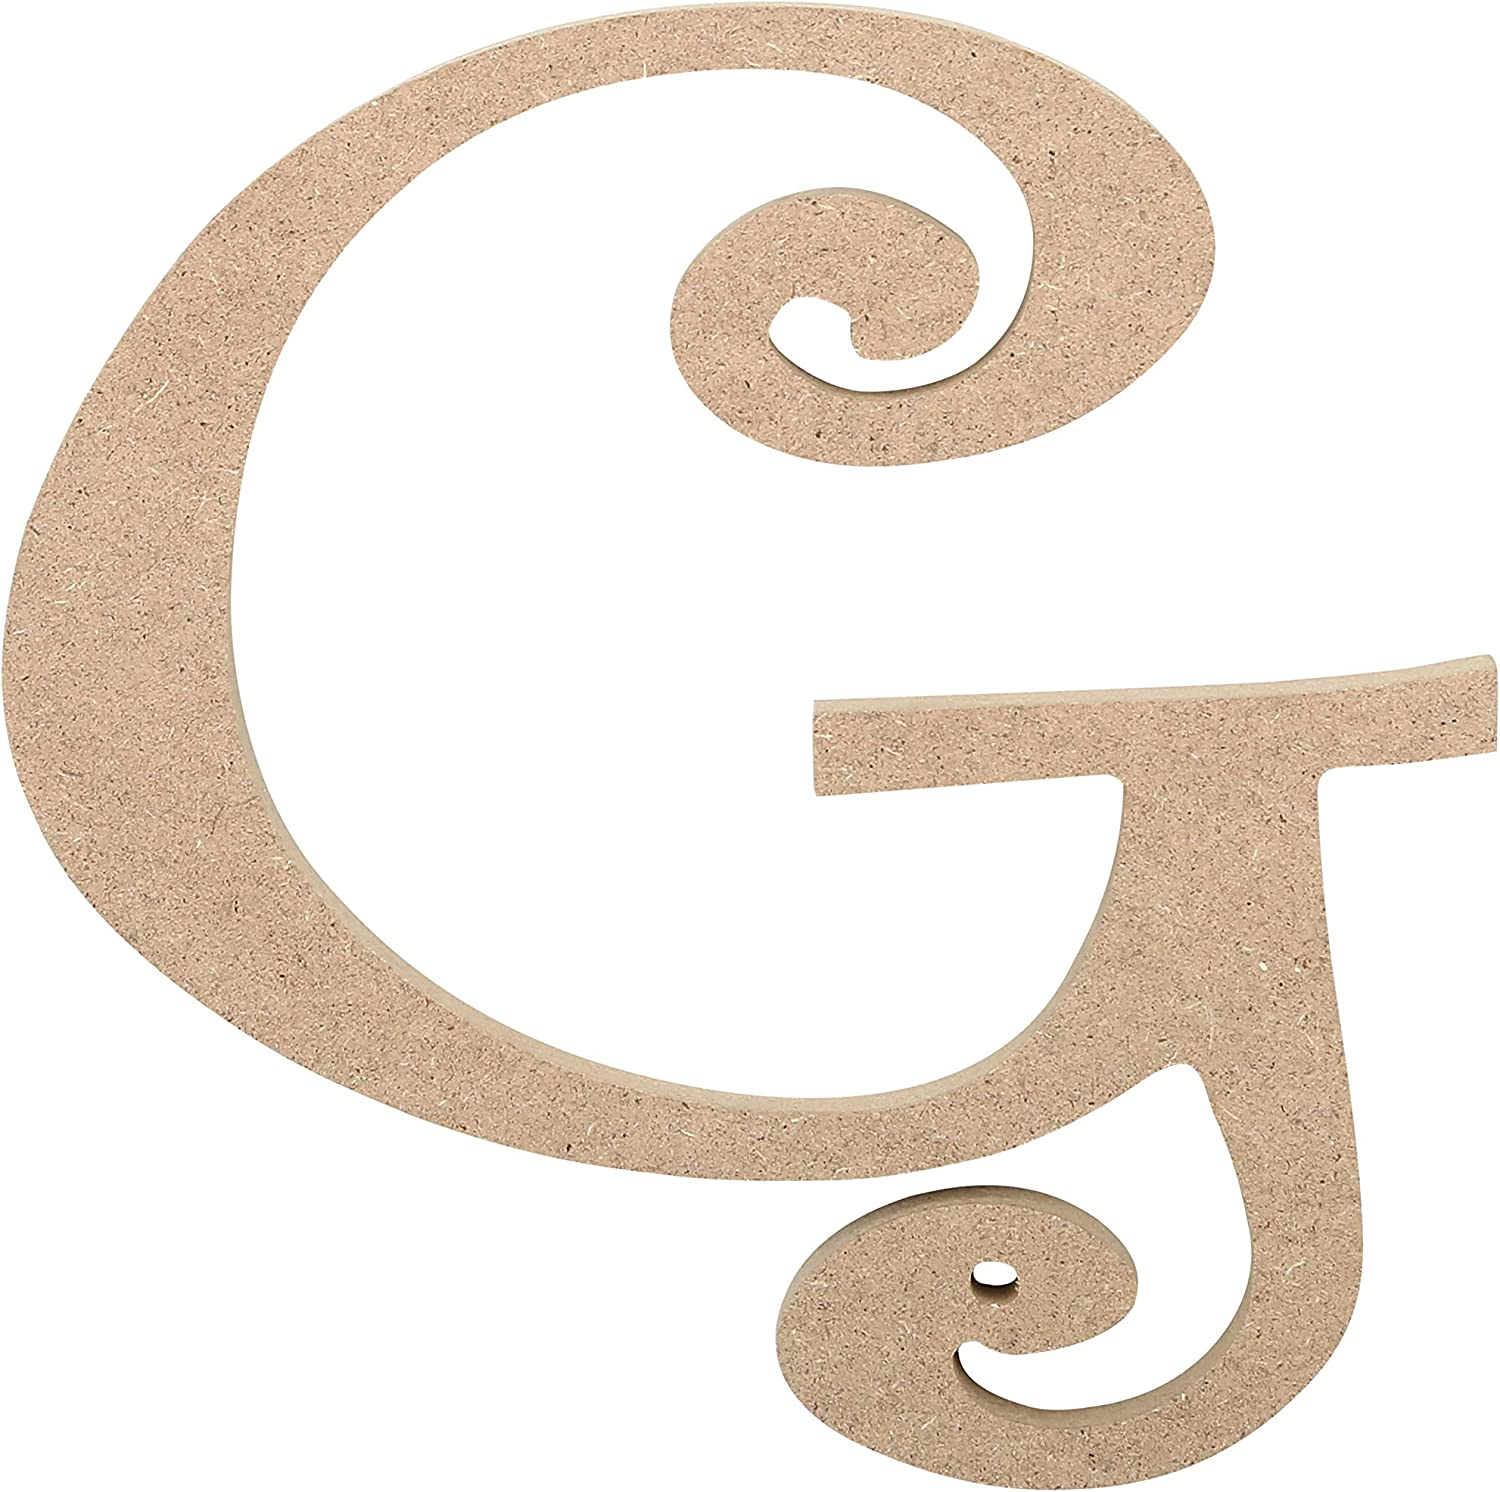 """JoePaul's Crafts Curly Wooden Letters - 6"""" - G - Premium Unfinished Wood Letters for Wall Decor (6 inch, Letter G)"""